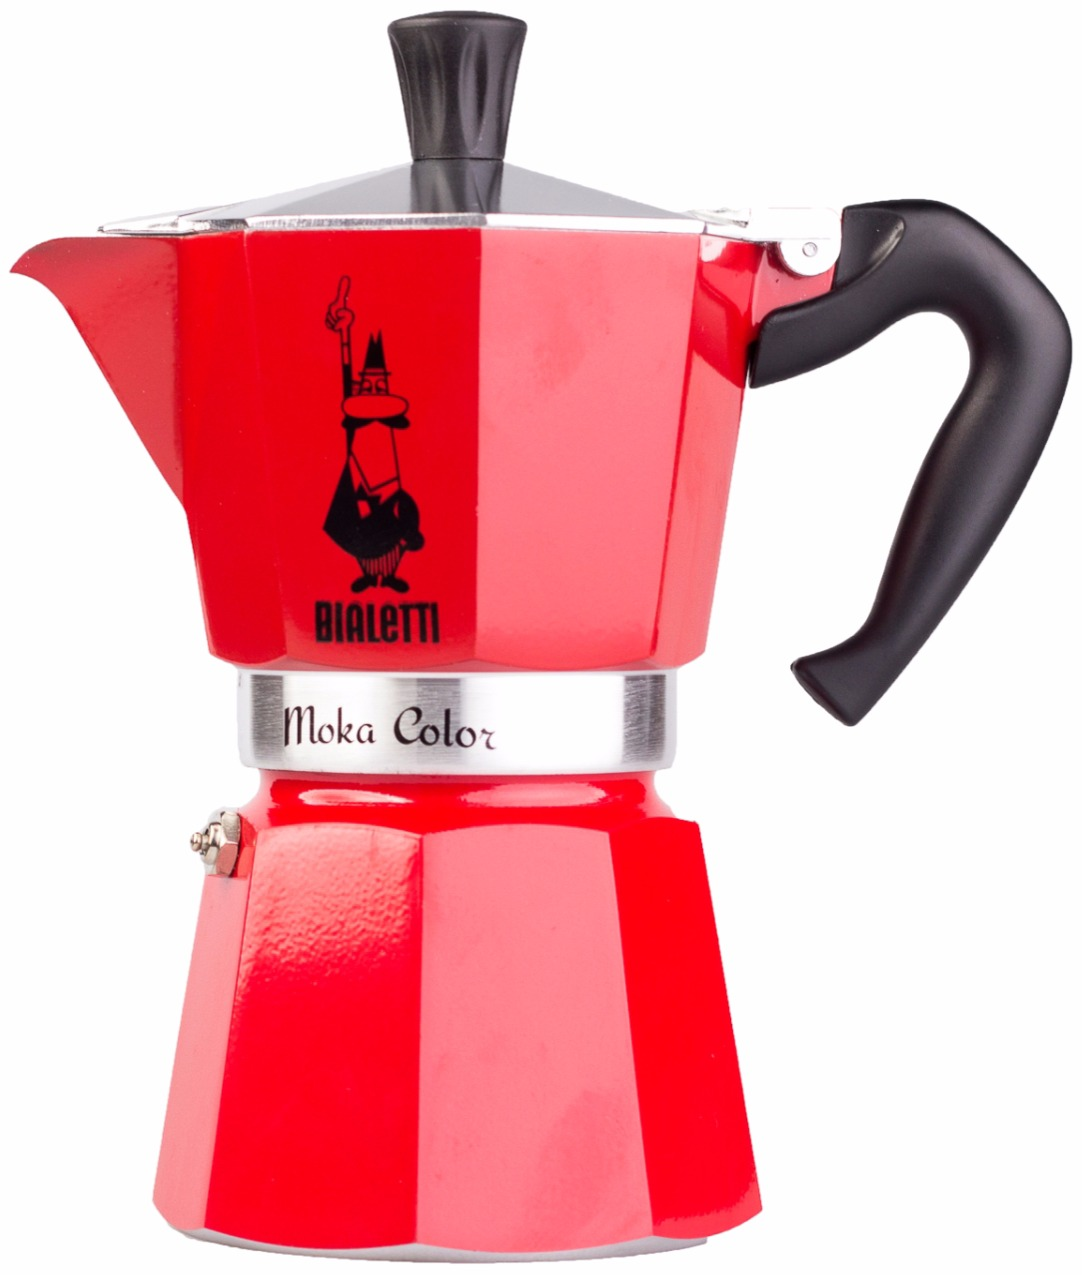 Bialetti Mokona Coffee Maker Red : Bialetti Moka Color 6 cup Stovetop Espresso Maker, Red - Crema